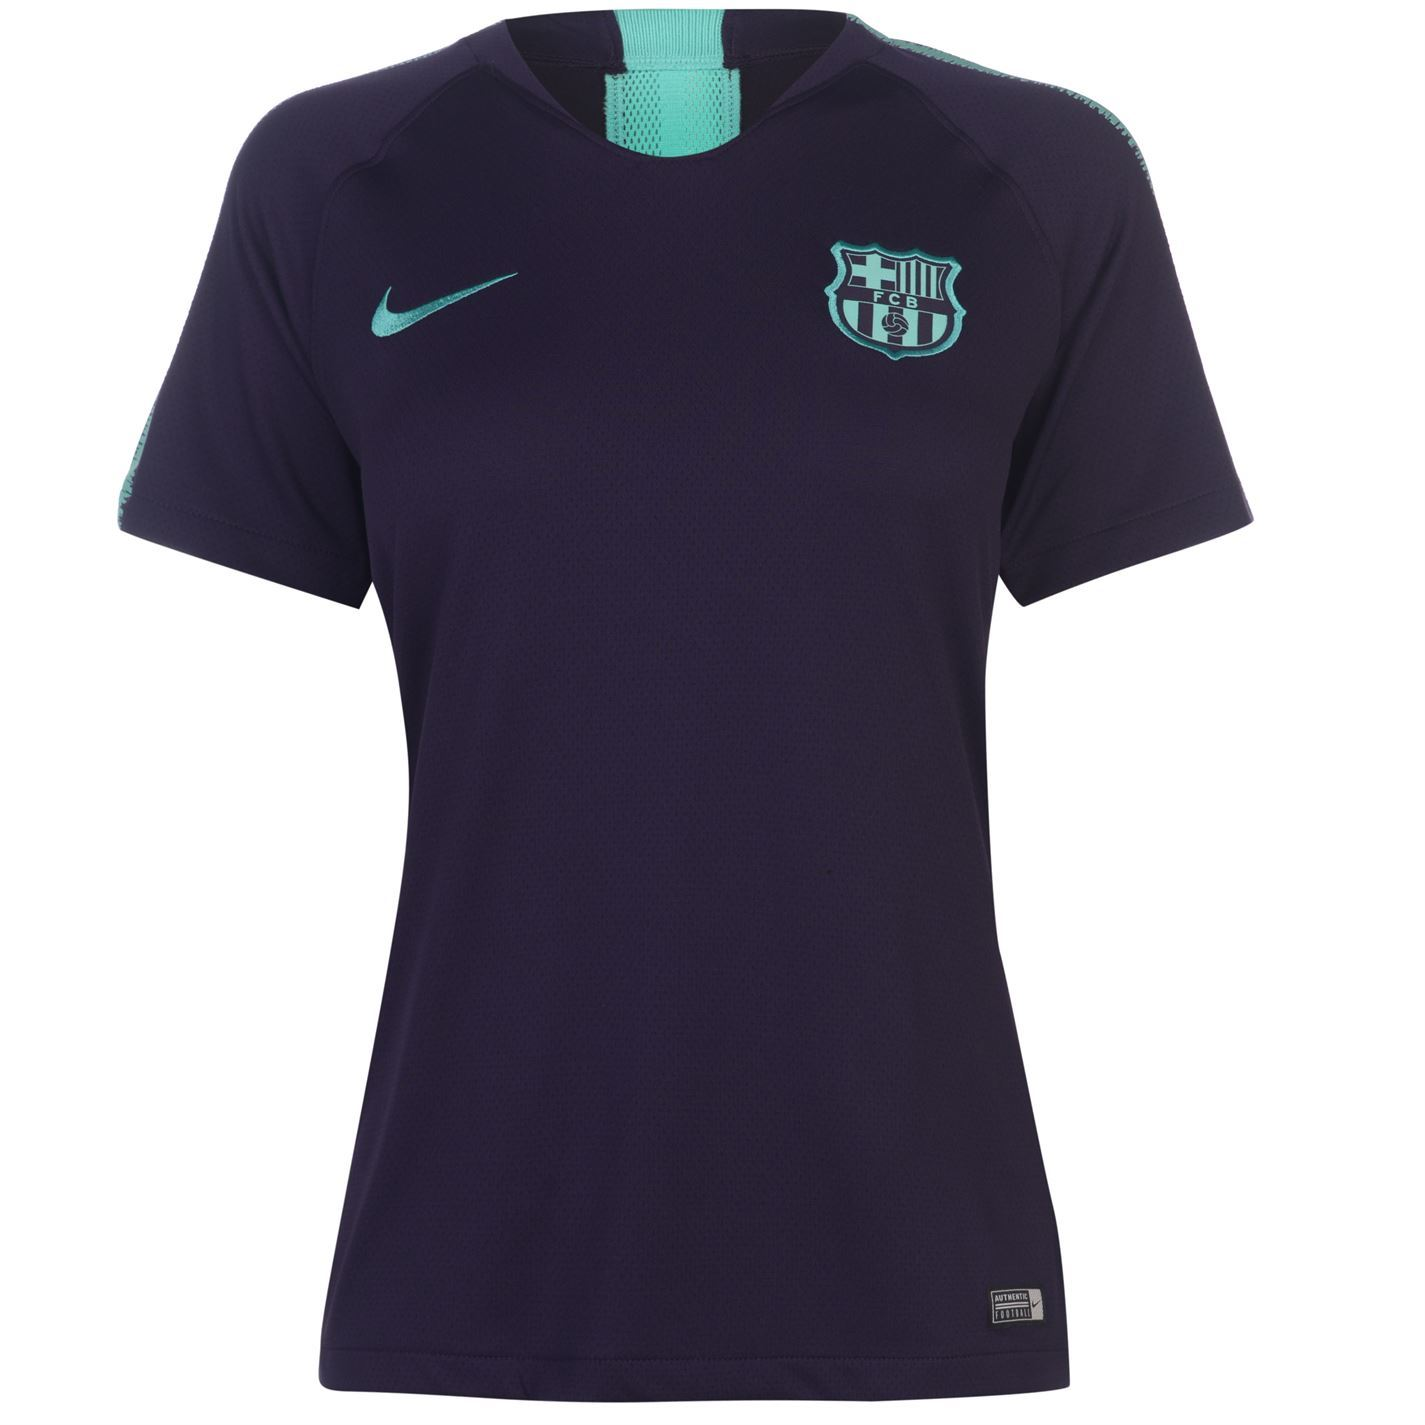 ... Nike Barcelona Squad T-Shirt Womens Purple Football Soccer Fan Top Tee  Shirt ... 0c6da6bc18